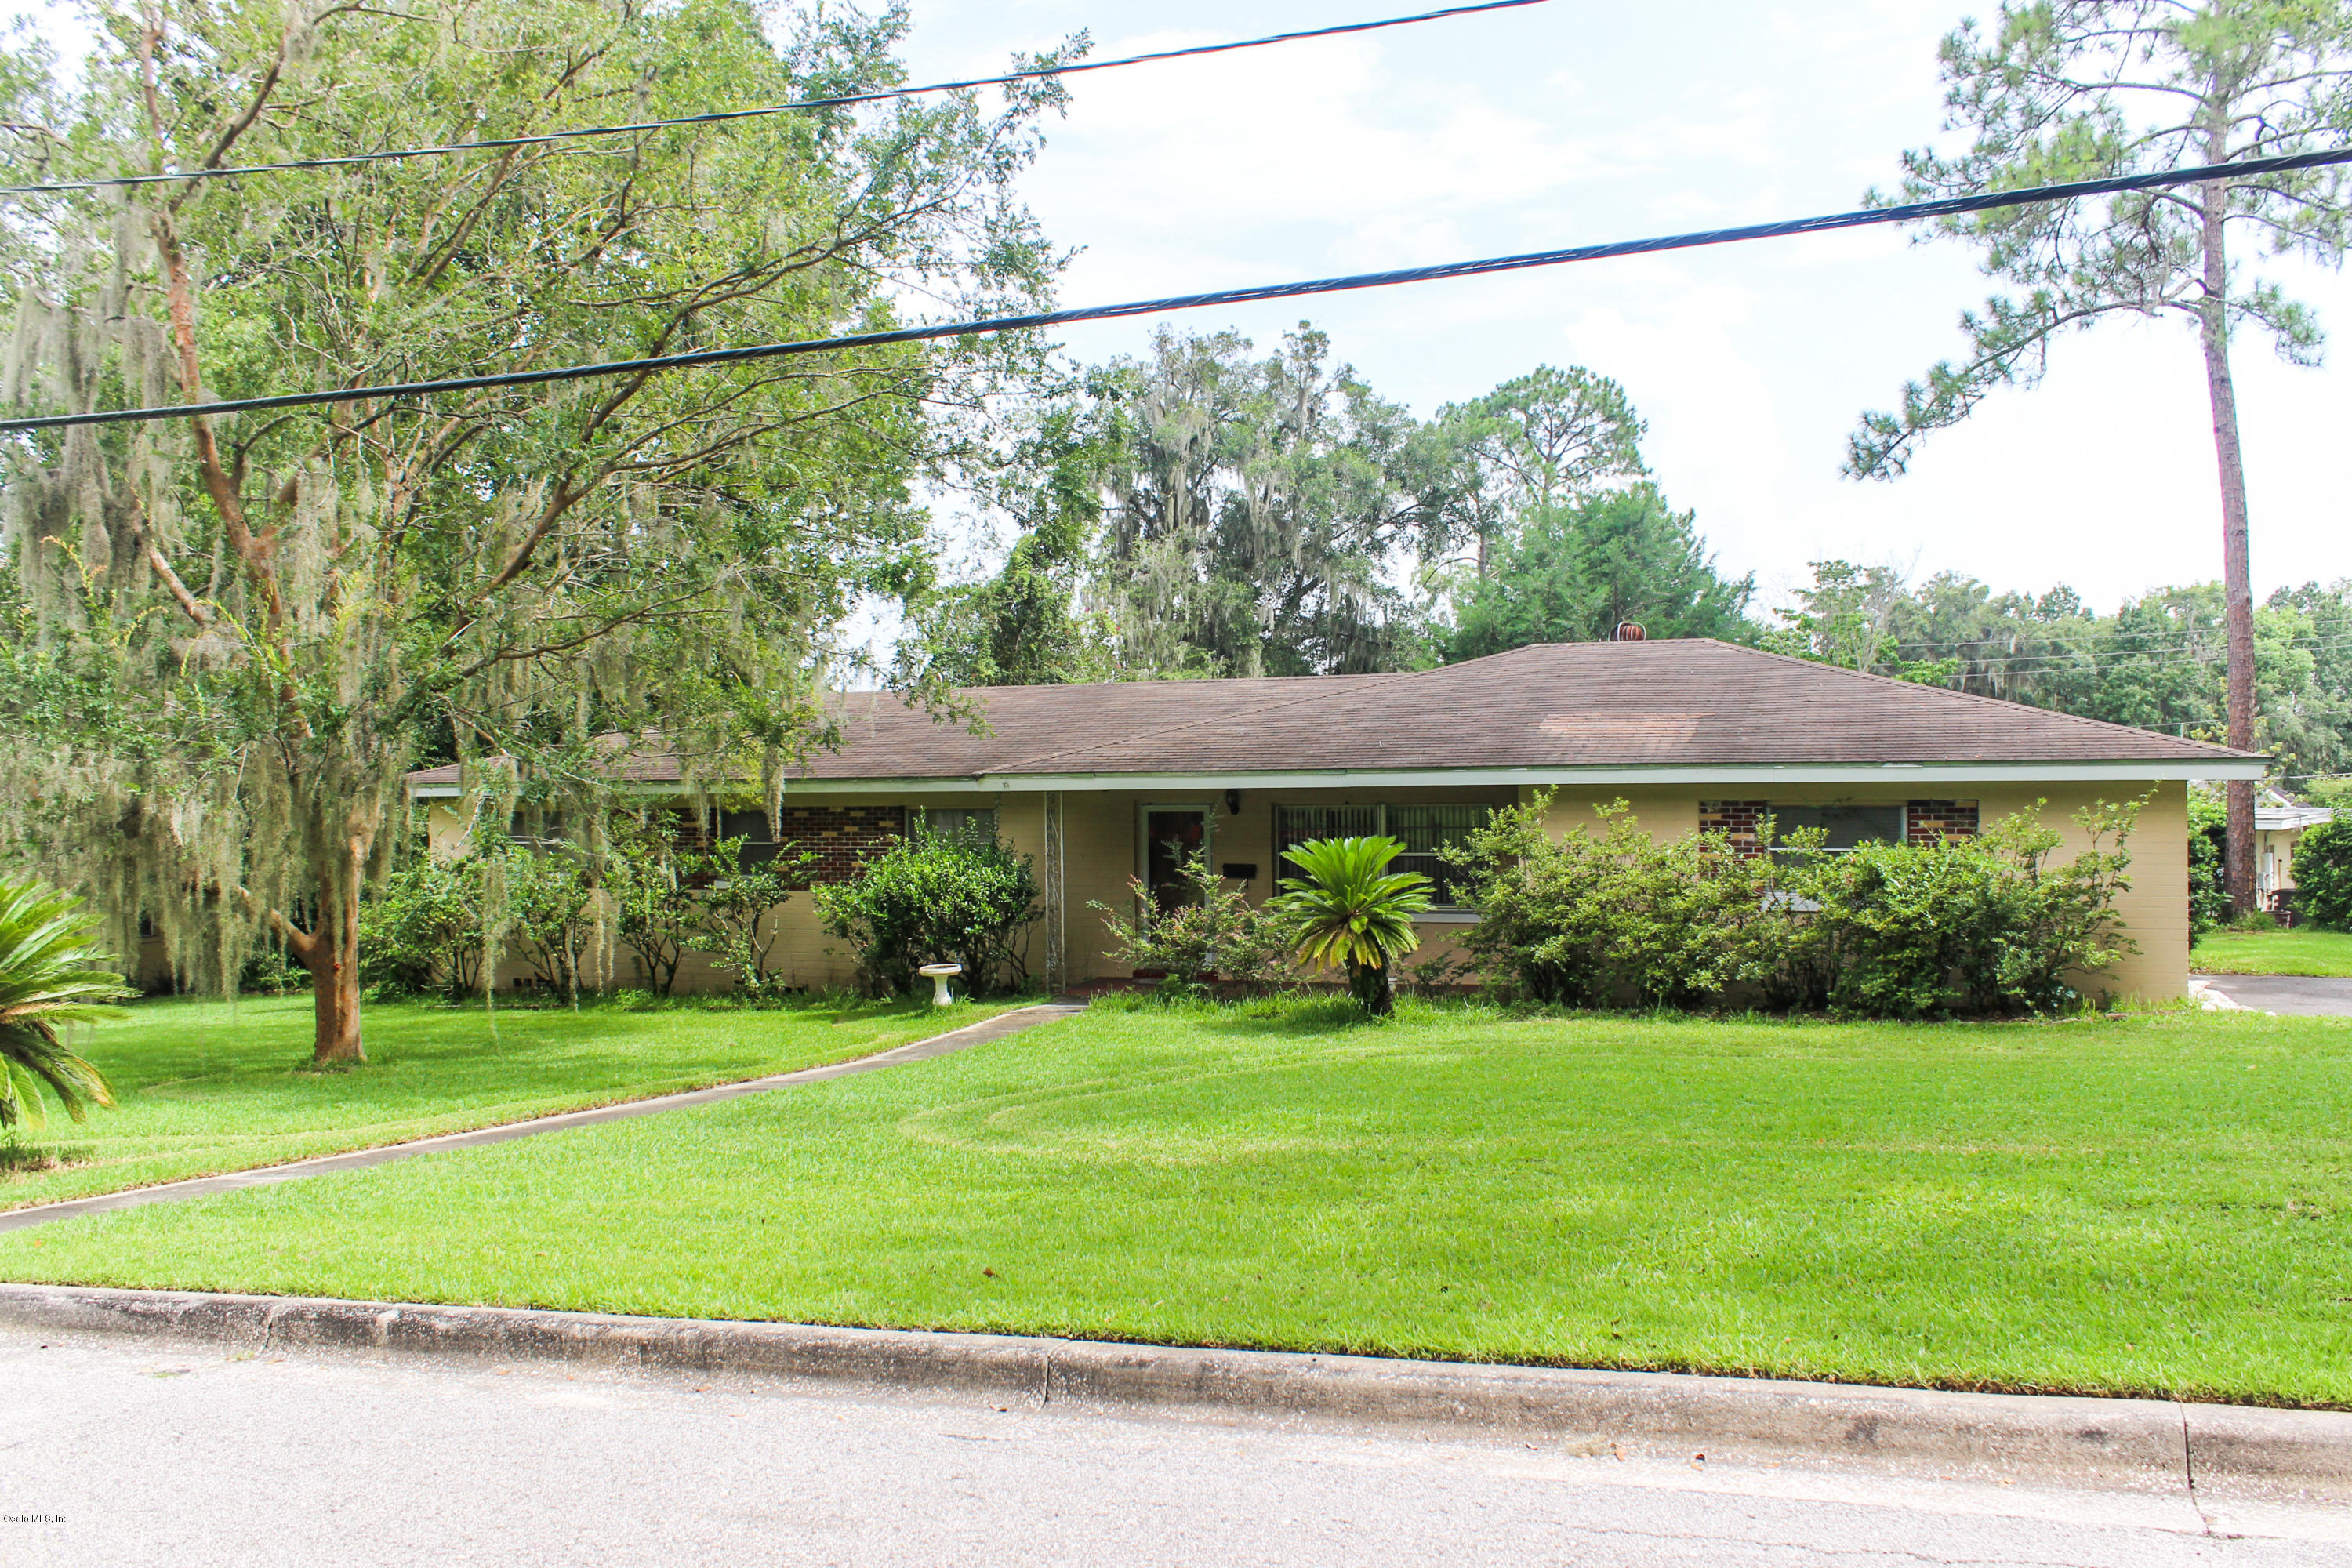 914 SE 14TH STREET, OCALA, FL 34471